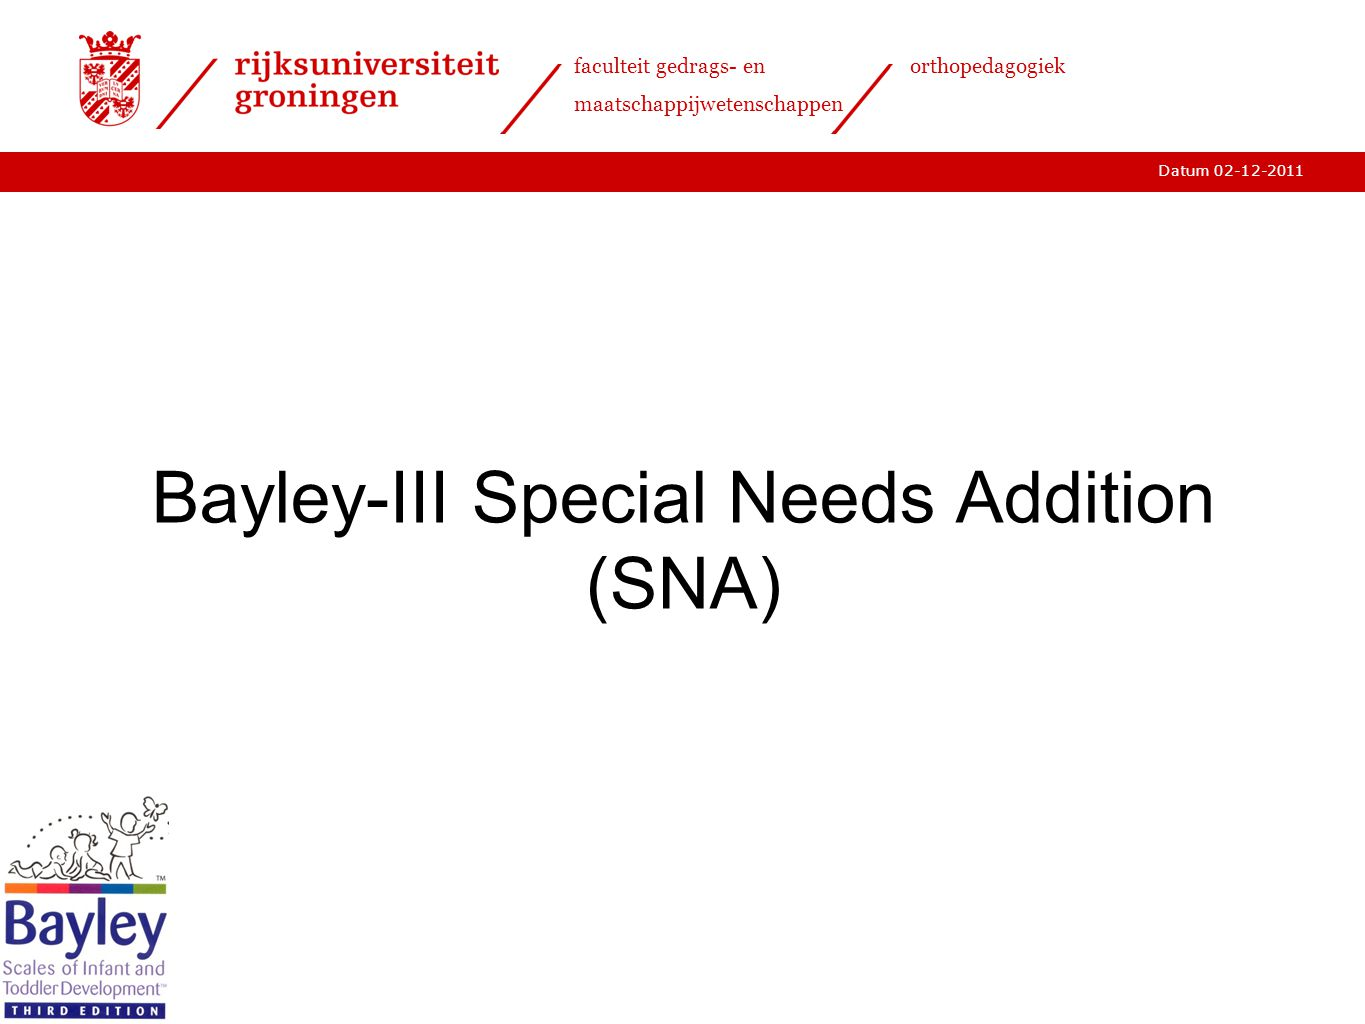 Bayley-III Special Needs Addition (SNA)